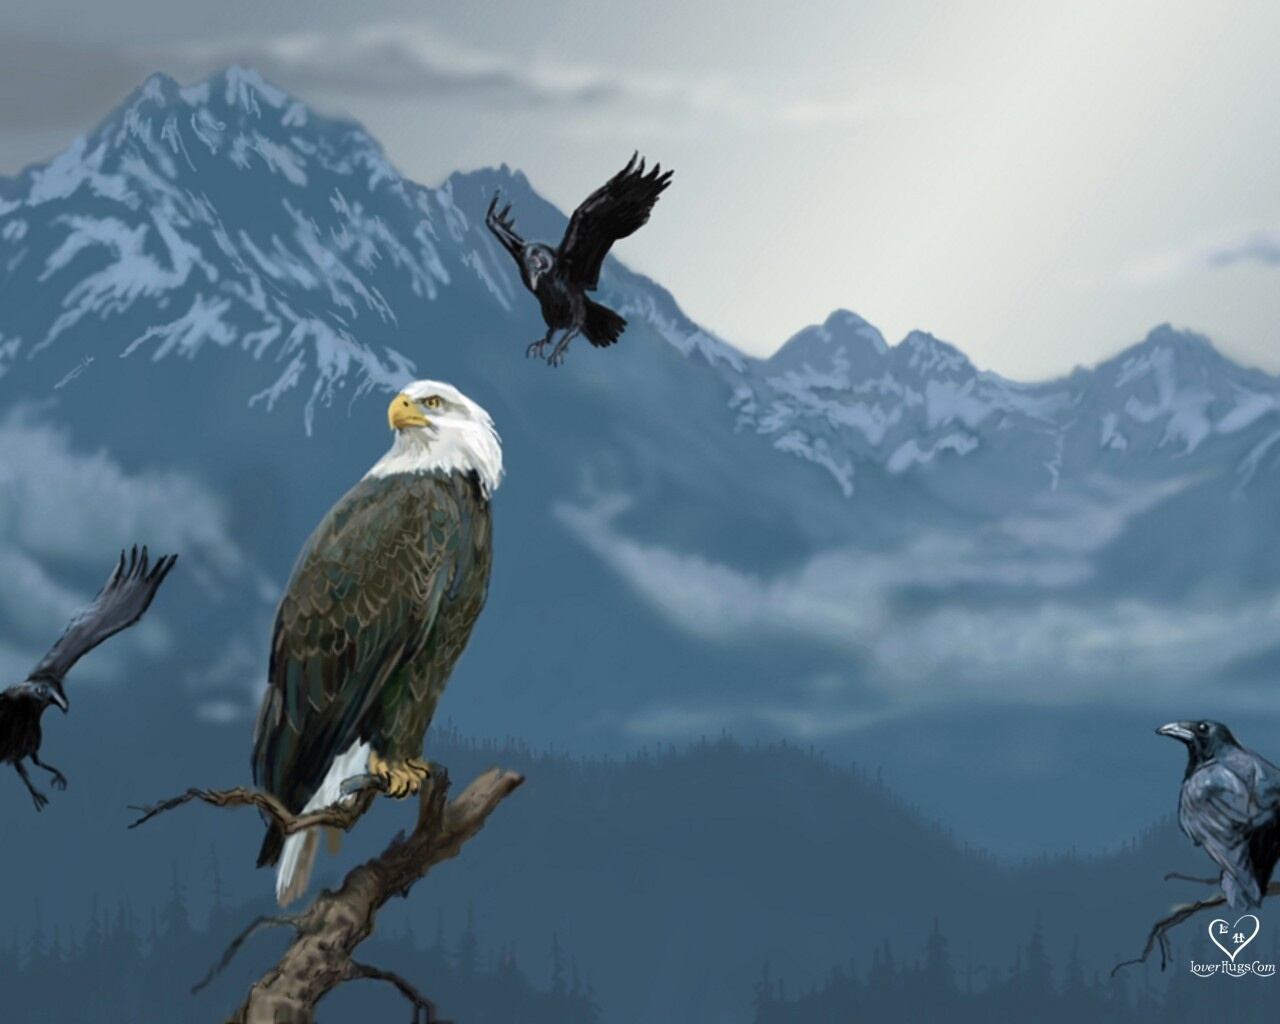 eagle 1280x1024 wallpaper - photo #13